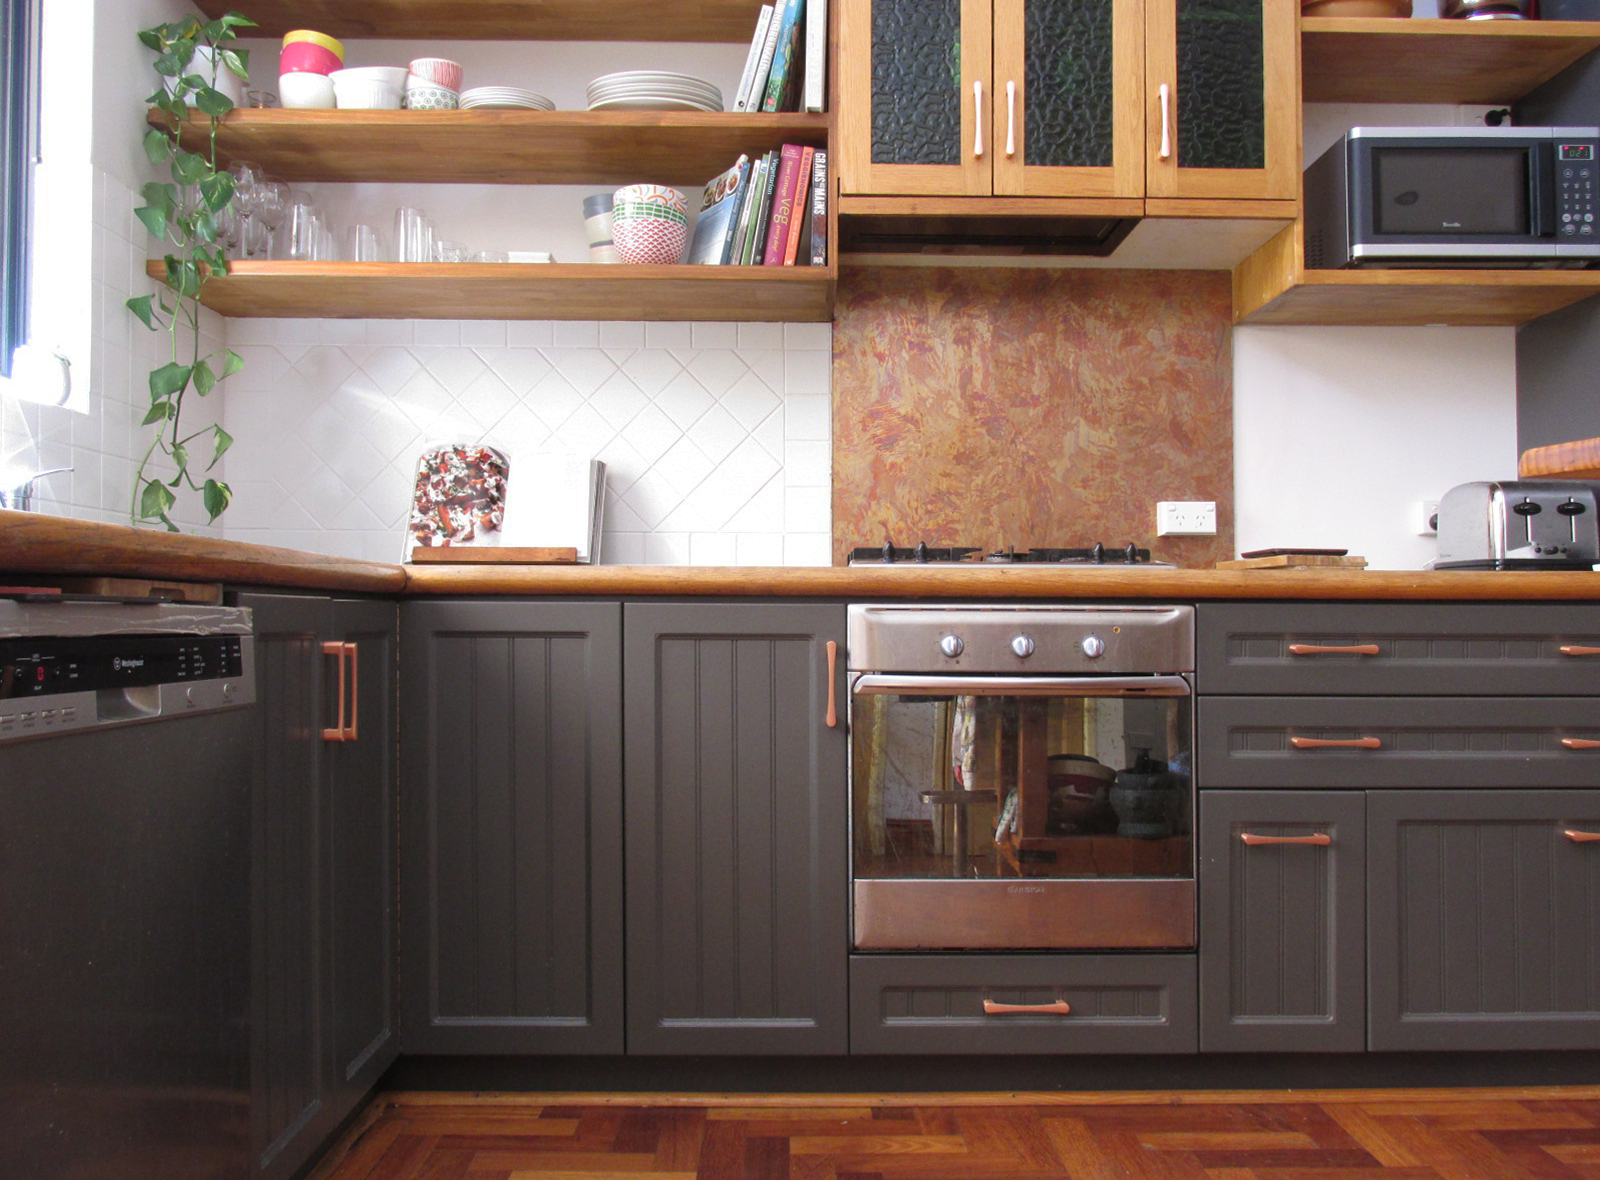 The renovated kitchen with its painted cupboard fronts and tiles and new solid timber shelving.